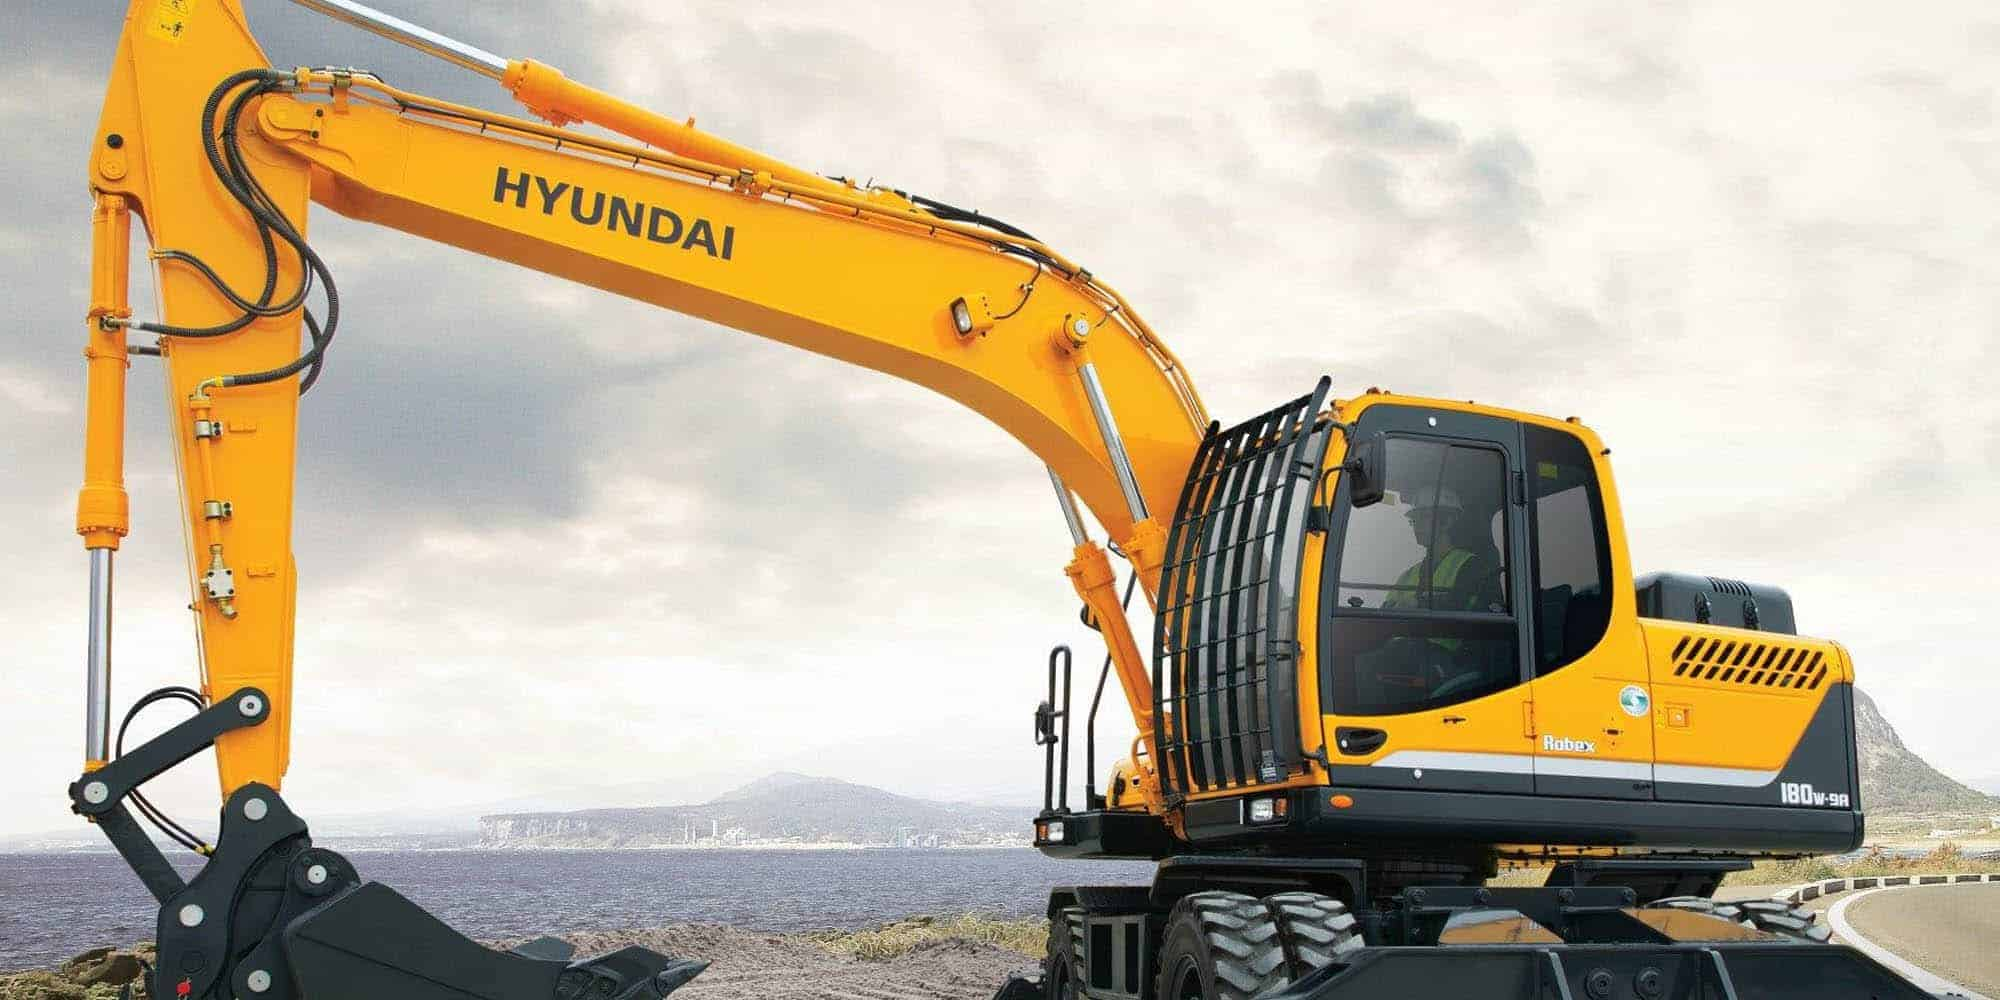 OEM Replacement Parts - Construction Equipment Parts Supplier - Specializing in John Deere, Hyundai Parts and Many More